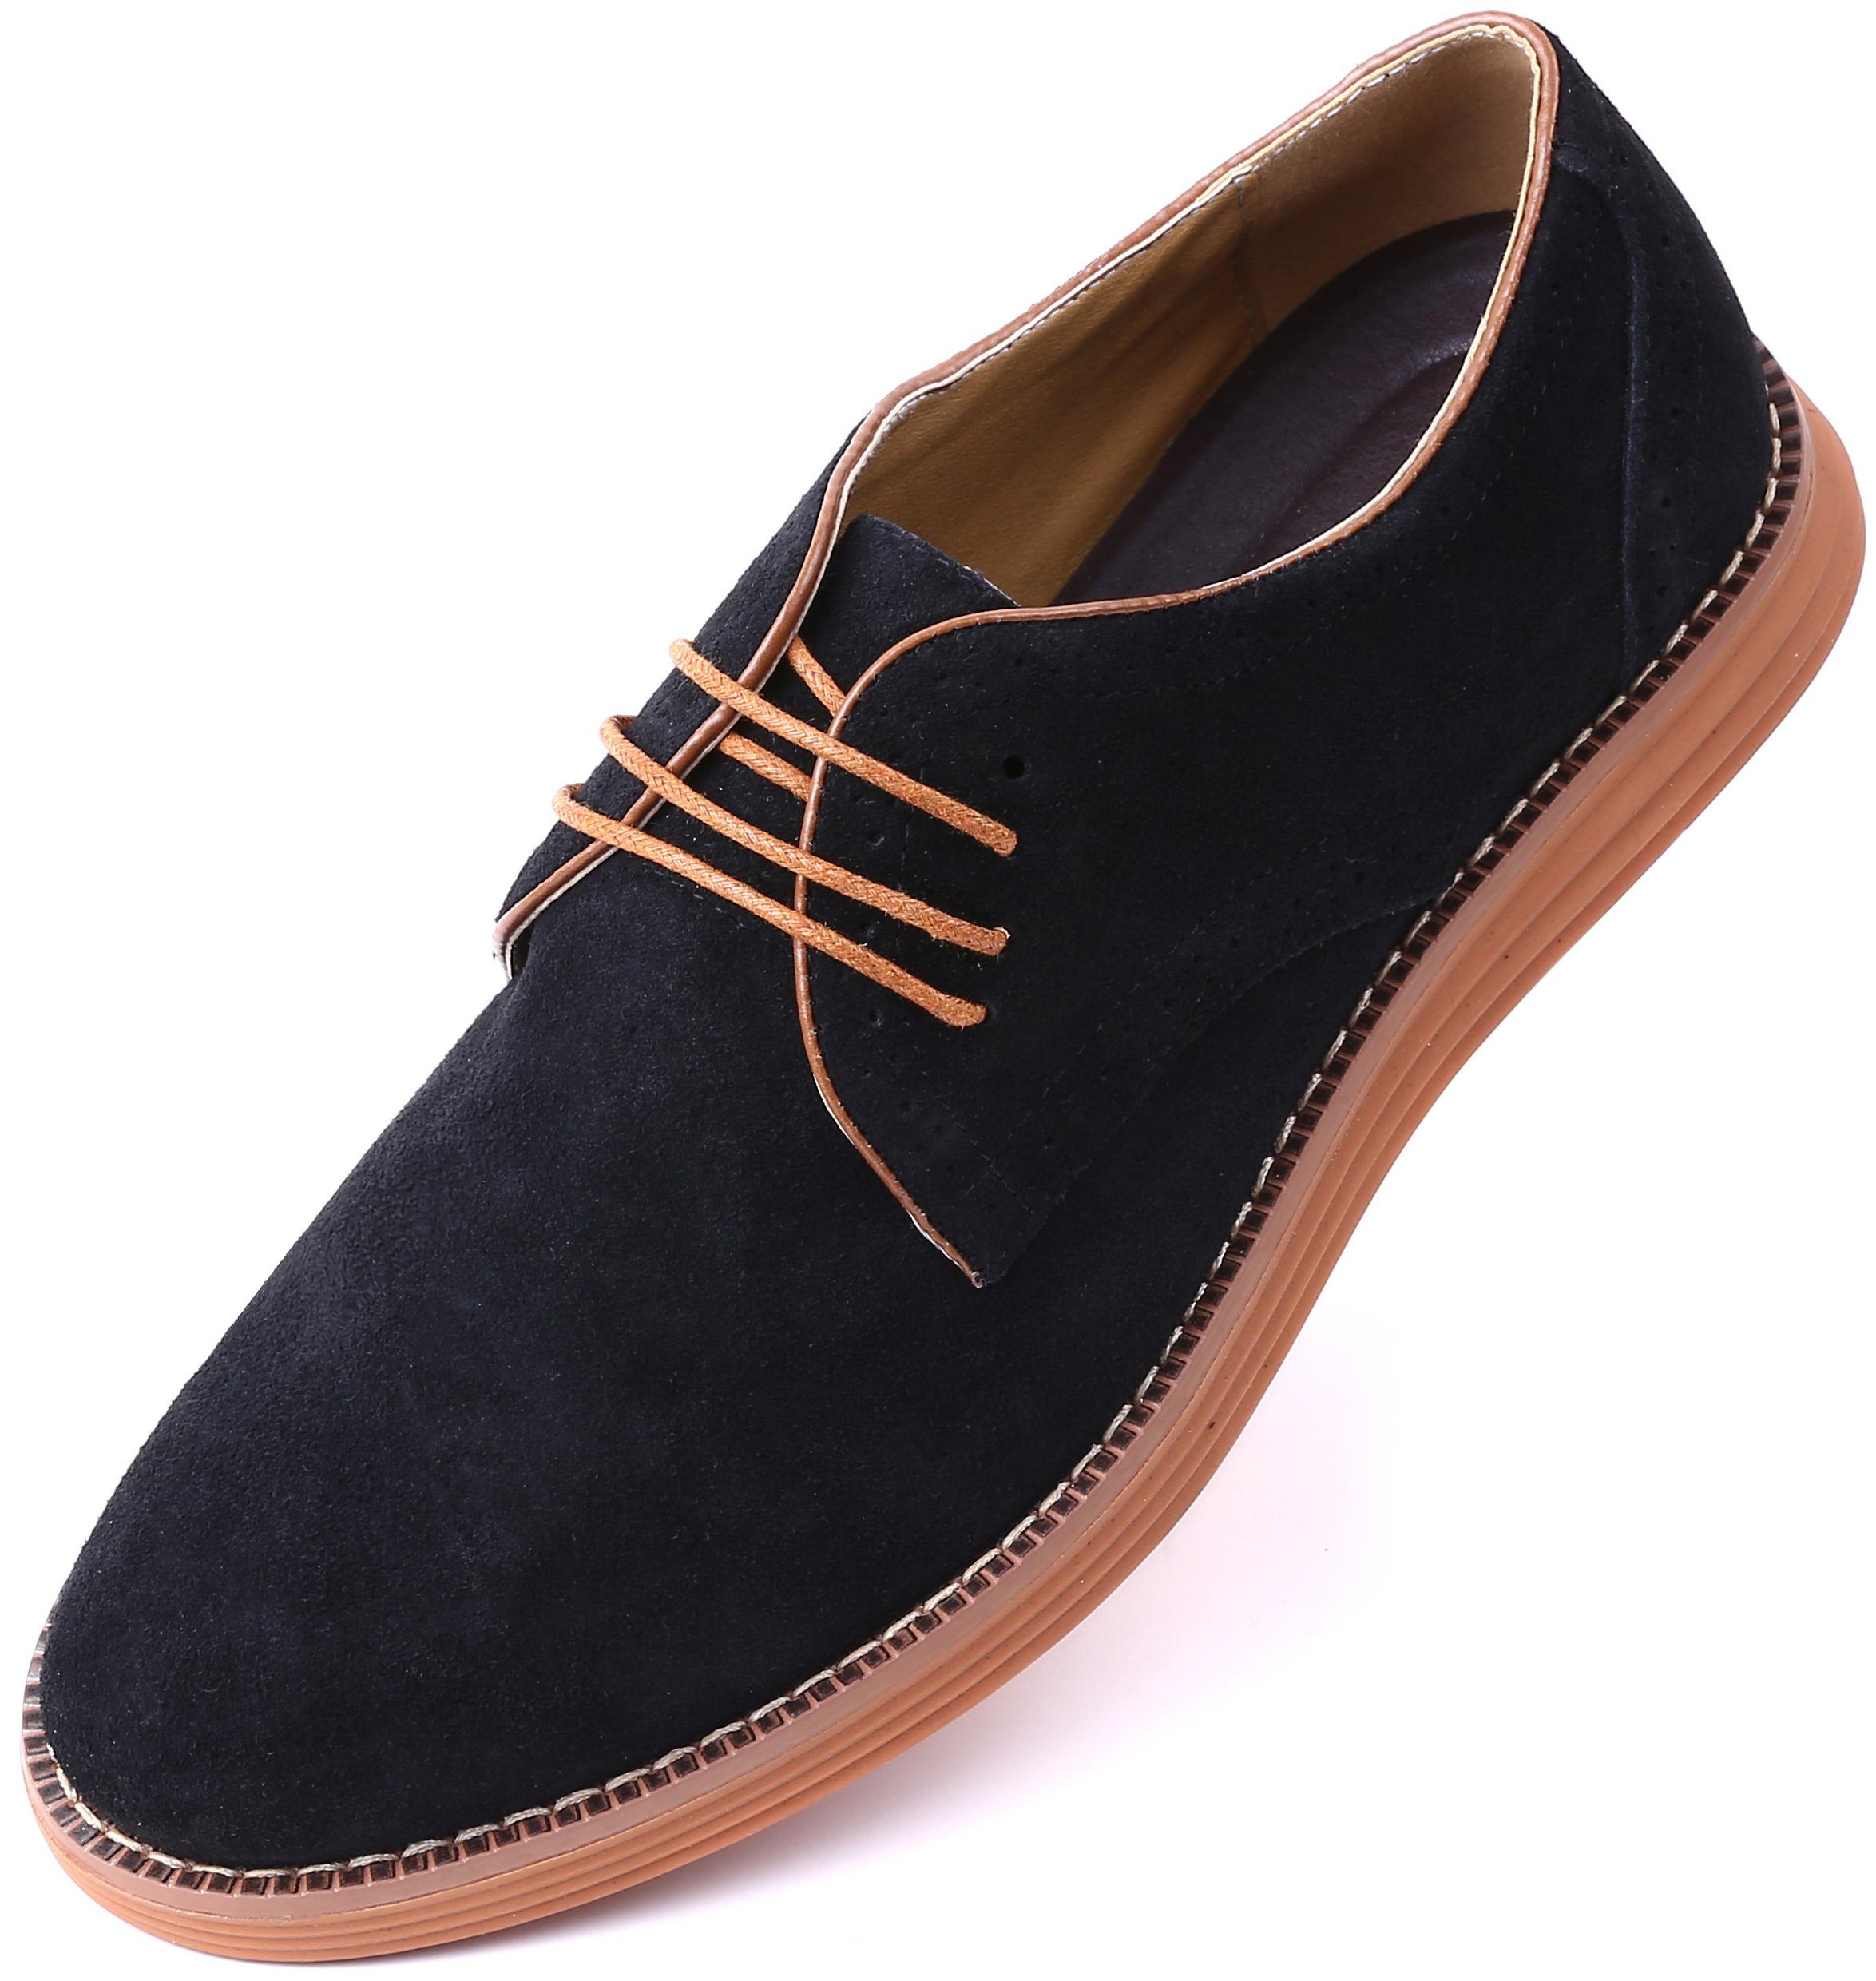 Marino Suede Oxford Dress Shoes for Men - Business Casual Shoes (Mid Night Black - 10 D(M) US)